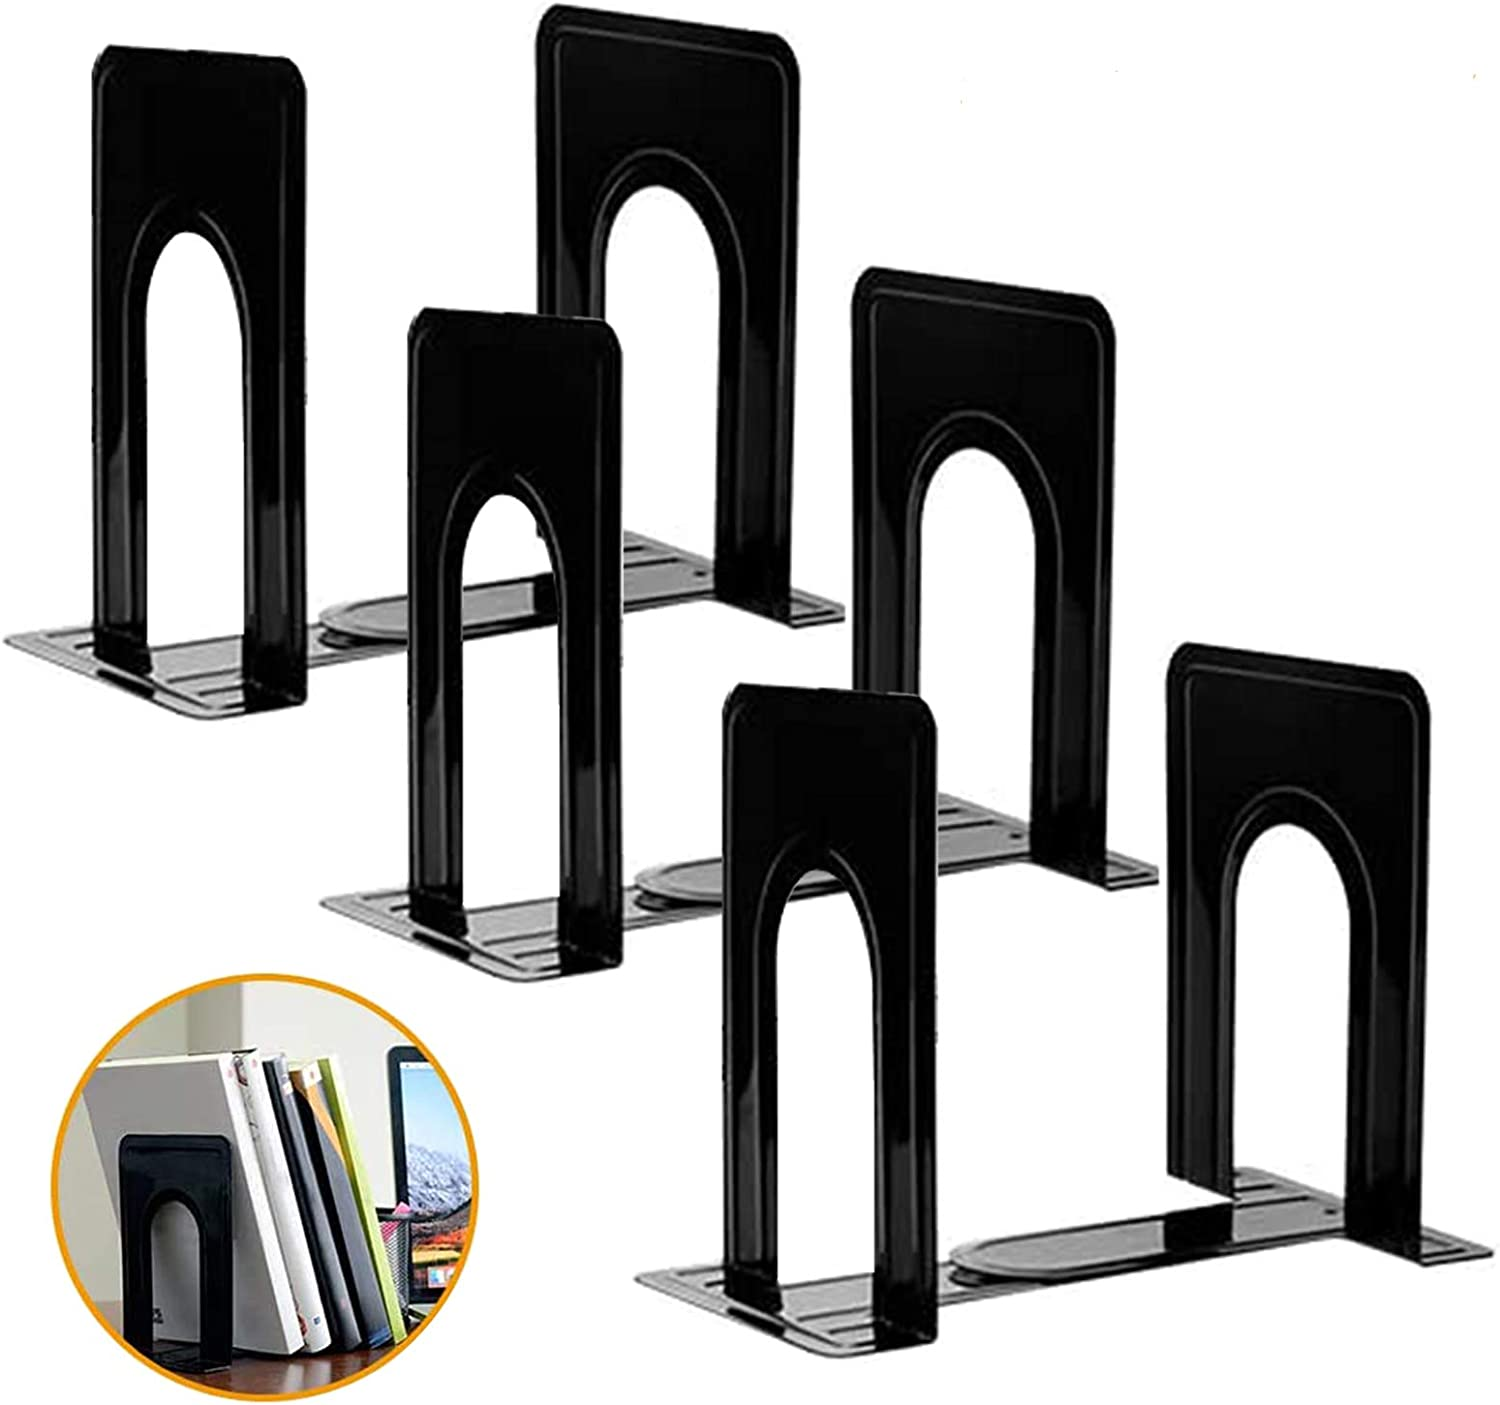 Umikk Bookends, Black Metal Nonskid Bookend Supports for Shelves Heavy Duty Books End, Office Book Stopper, 6 x 5 x 6 Inches, 6 Pieces (3 Pairs) (Black)